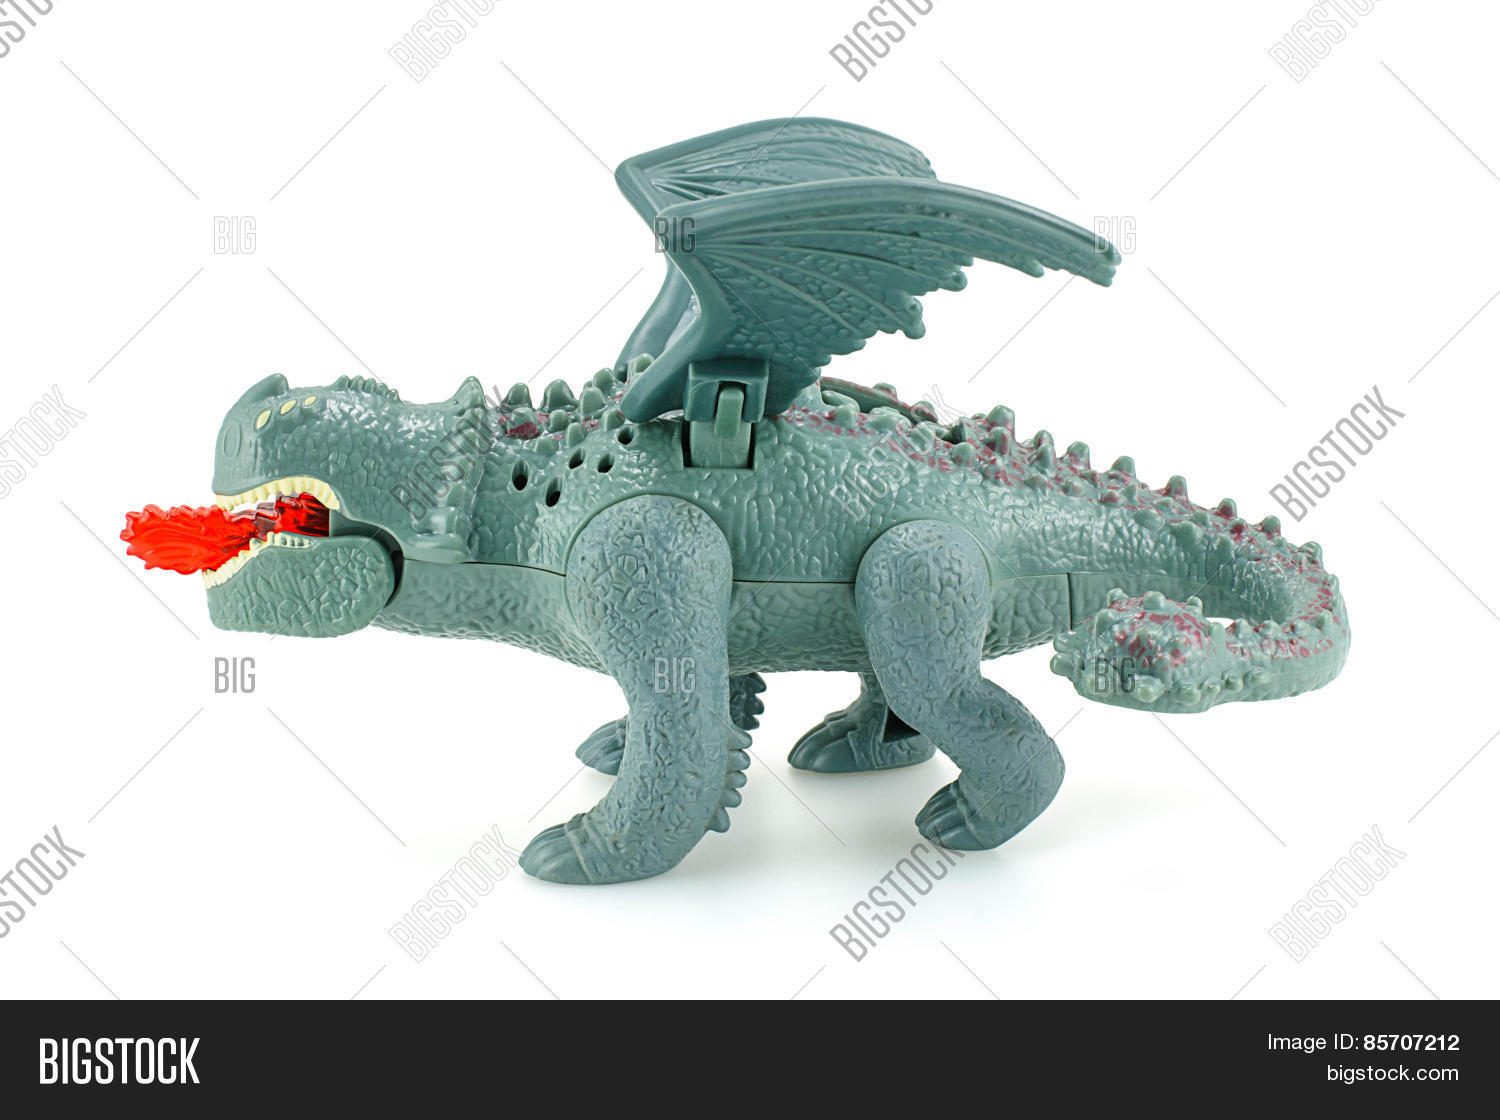 Red death dragon toy image photo free trial bigstock red death dragon toy character from how to train your dragon animation film ccuart Images